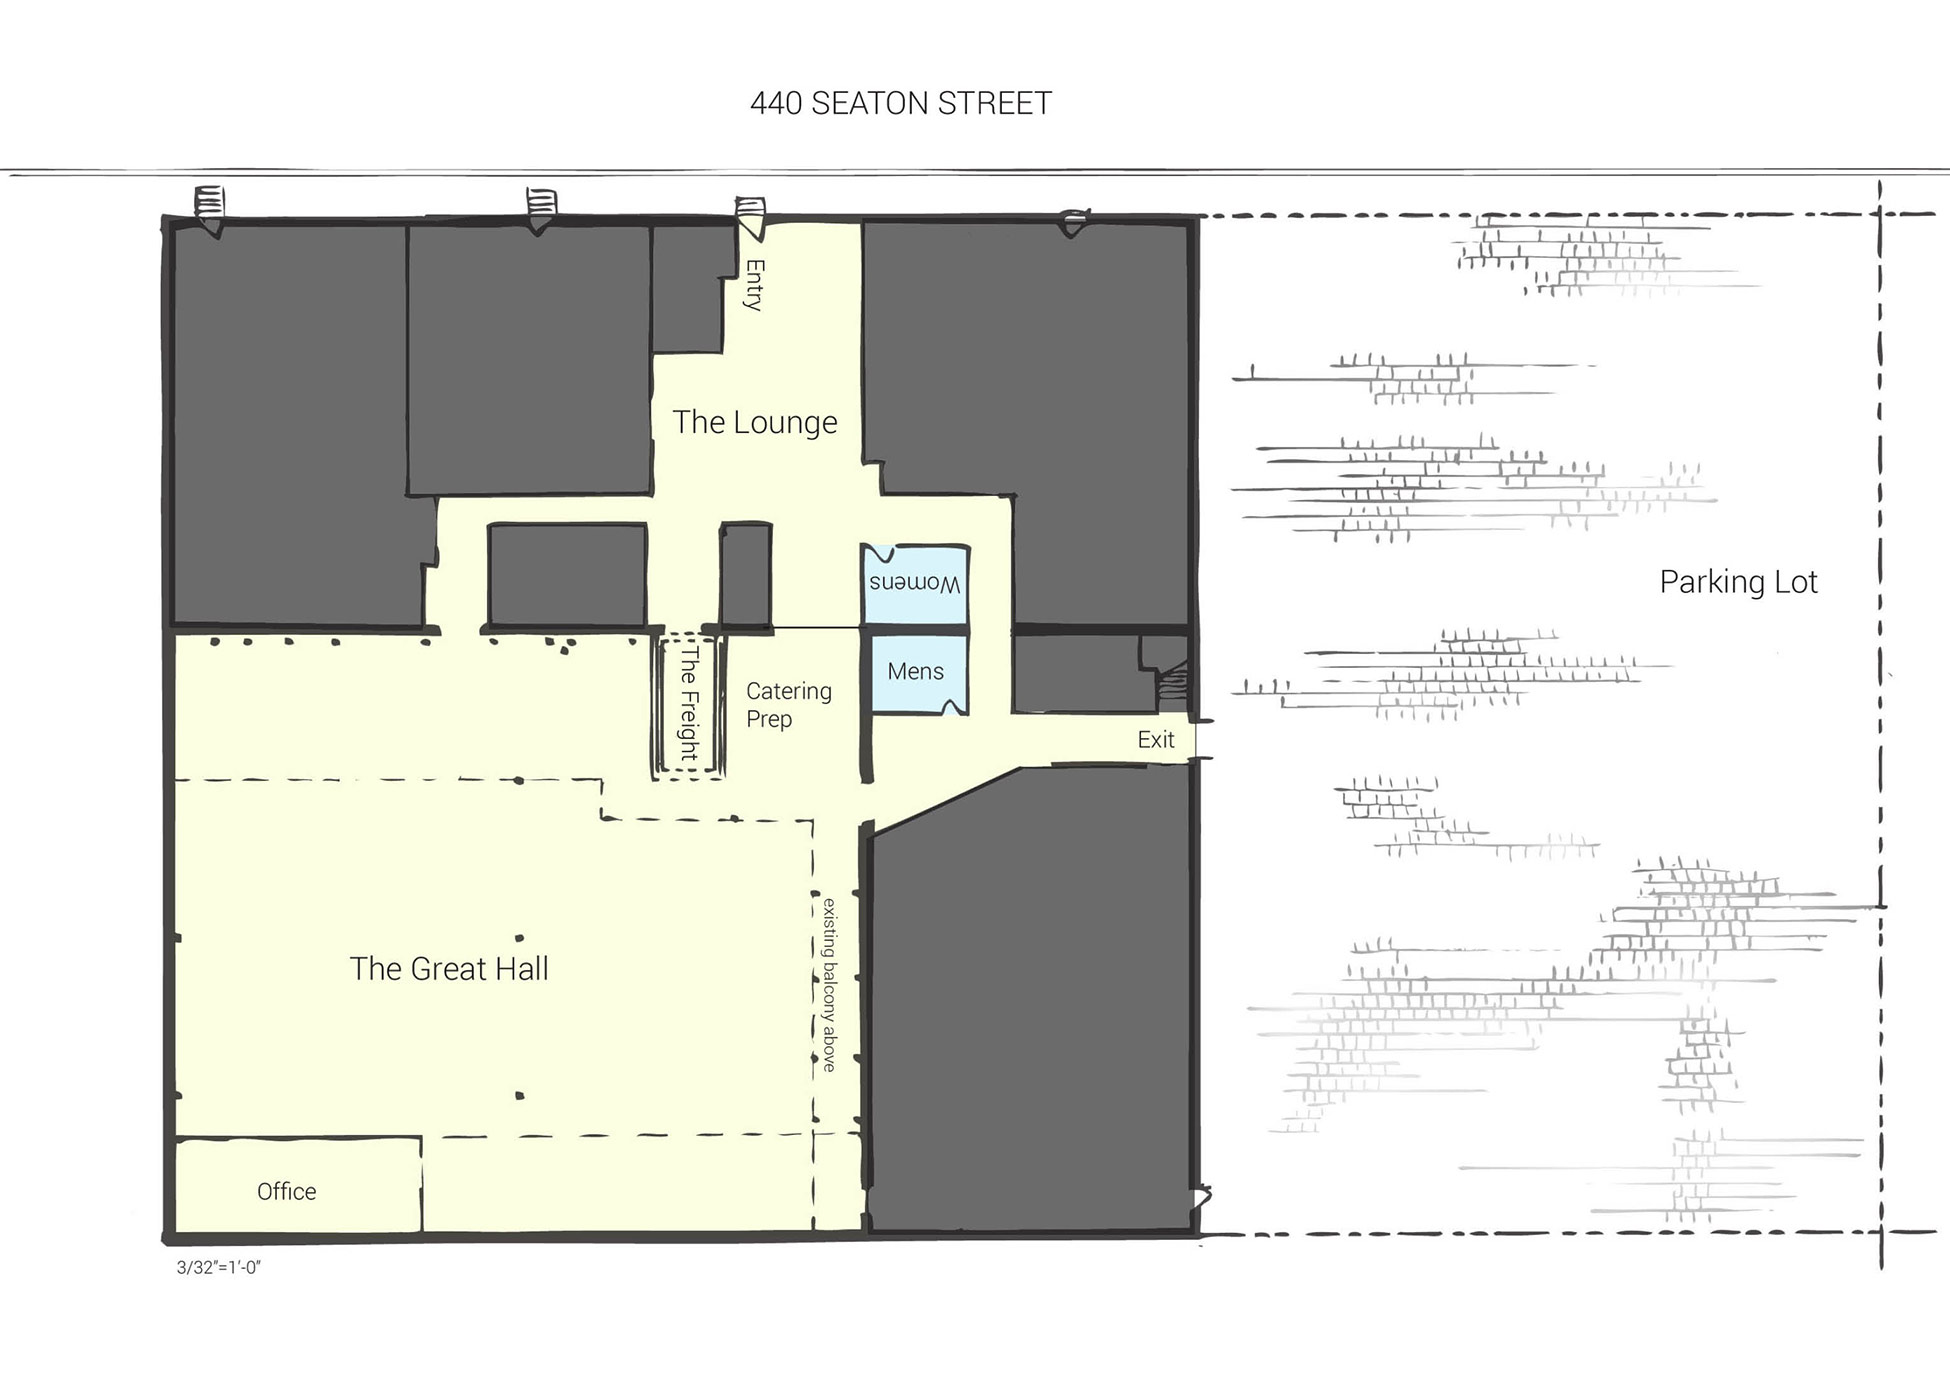 440seaton-floorplan